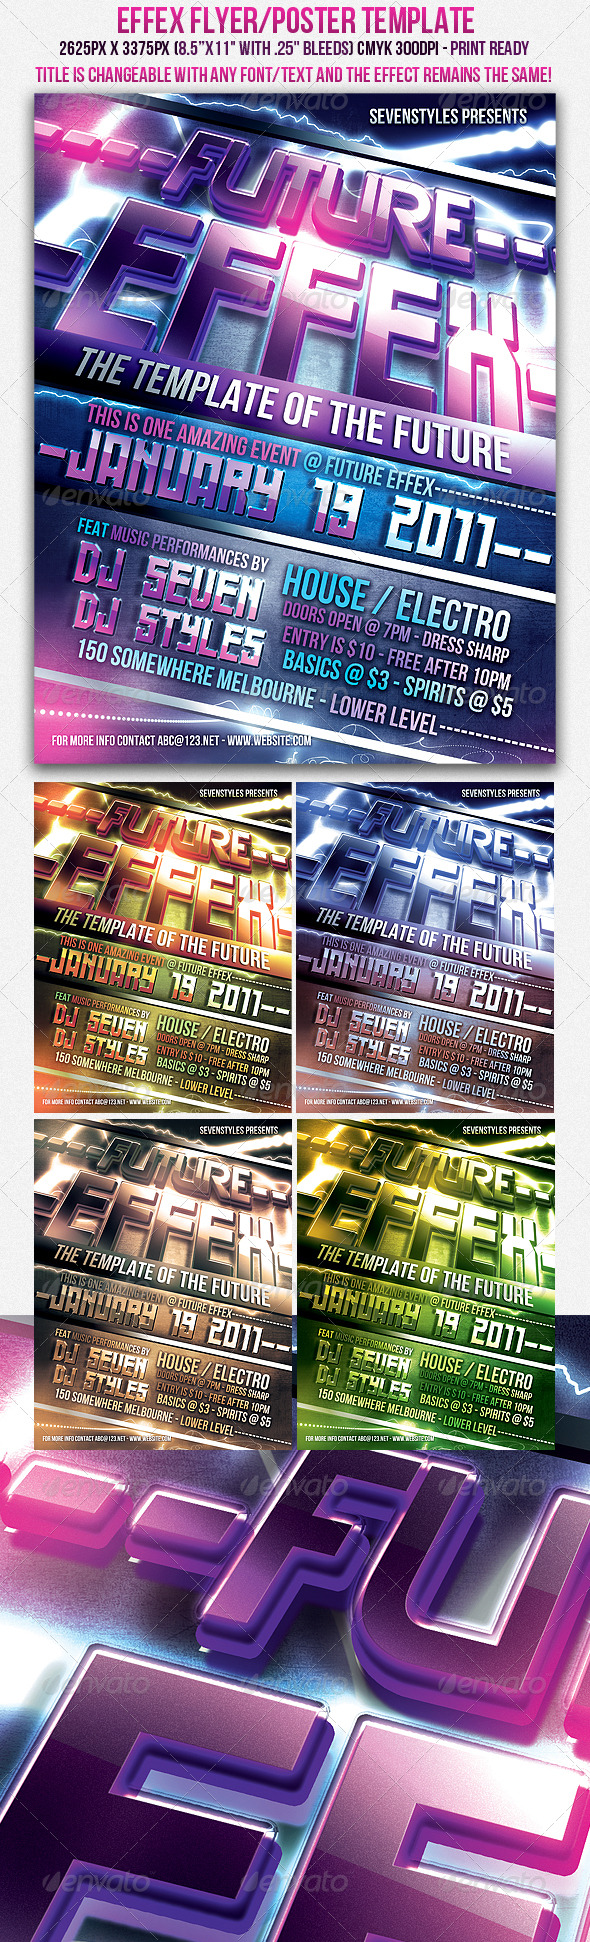 Effex Poster/Flyer Template - Clubs & Parties Events